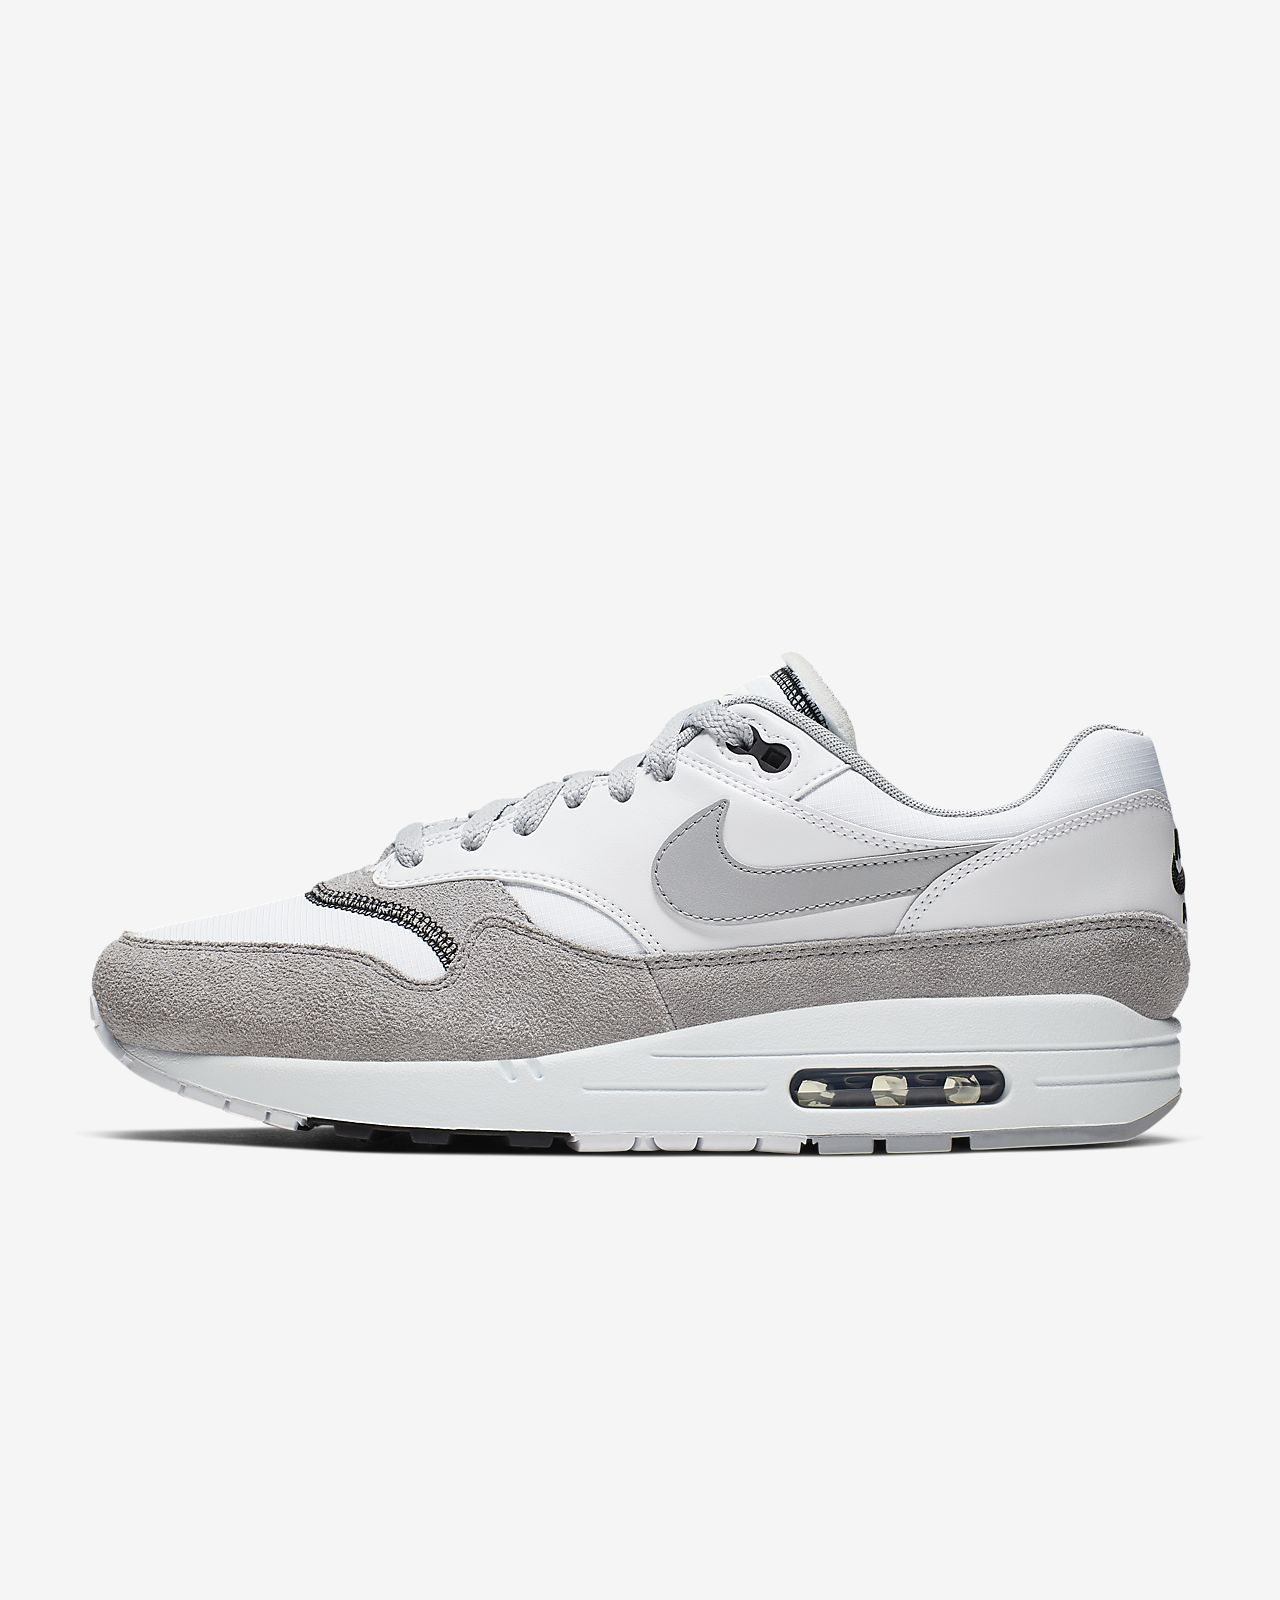 photos officielles 78c59 a6f7a Nike Air Max 1 Men's Shoe